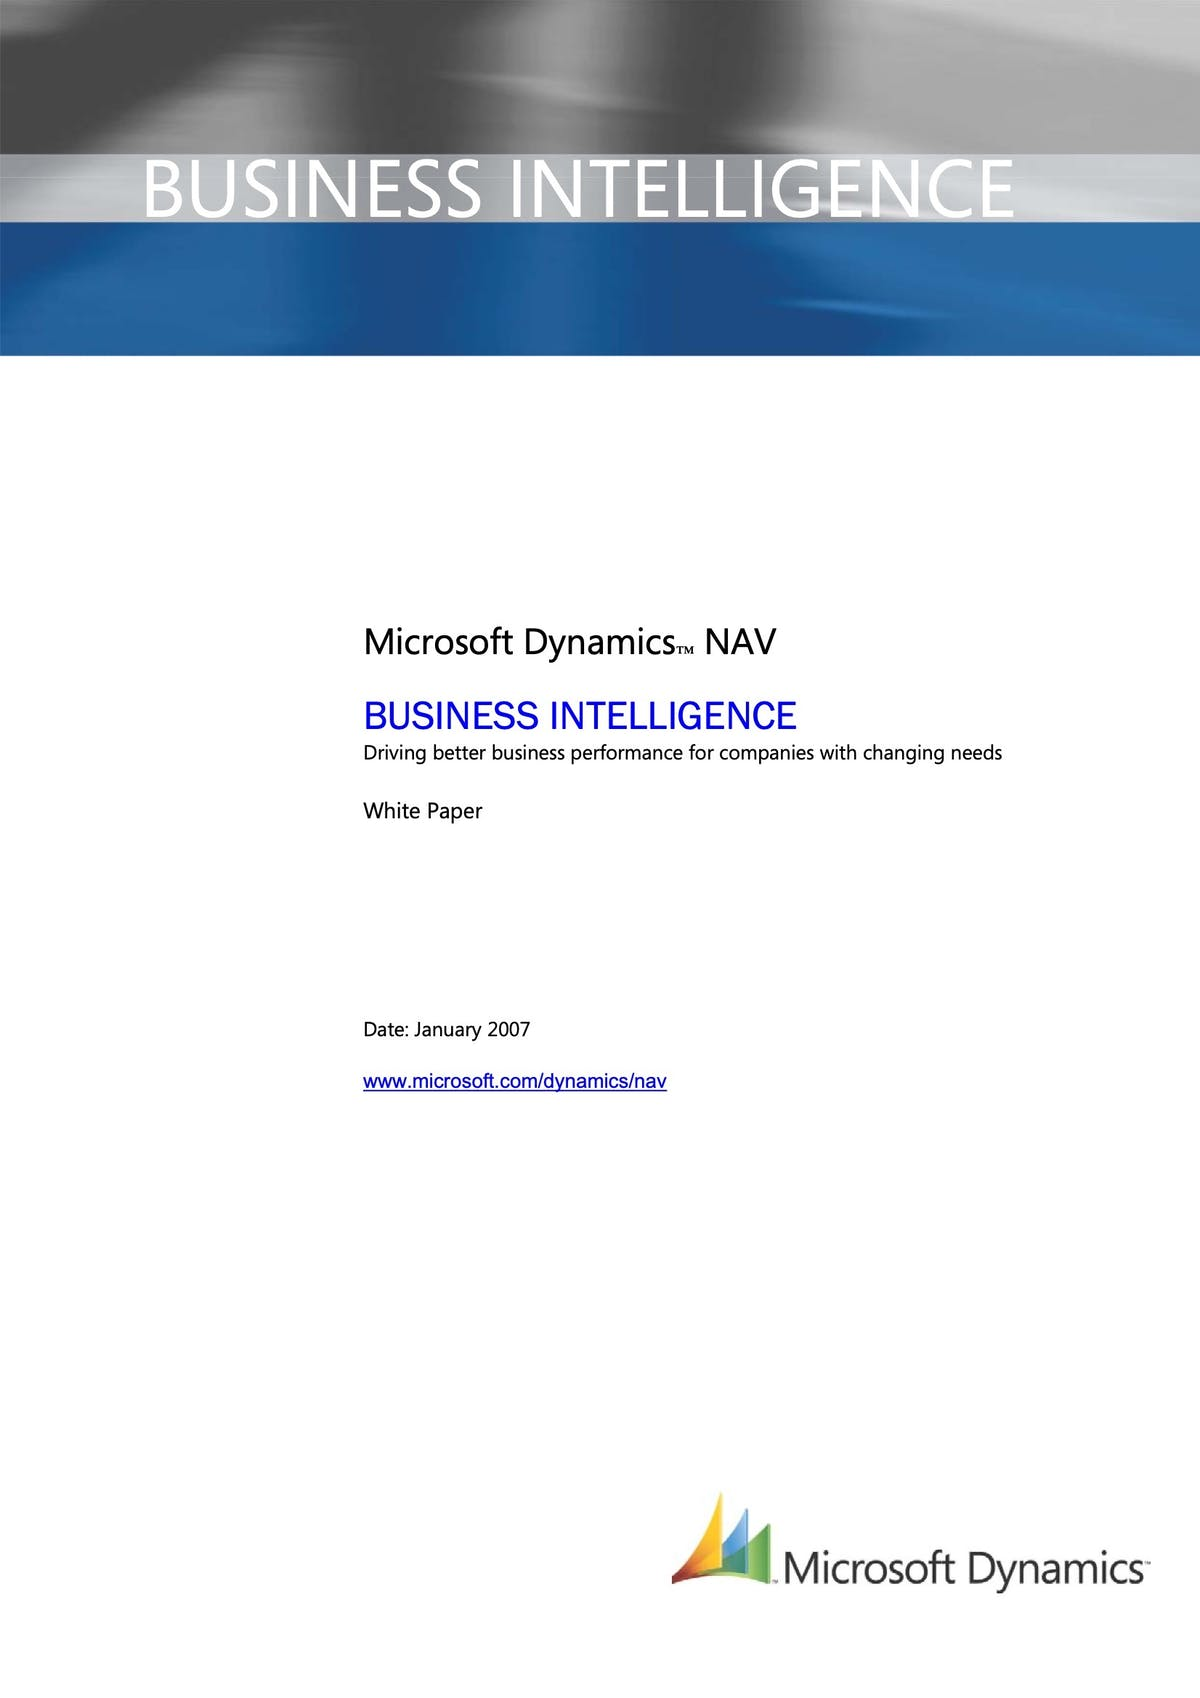 Microsoft Dynamics NAV White Paper - Business Intelligence